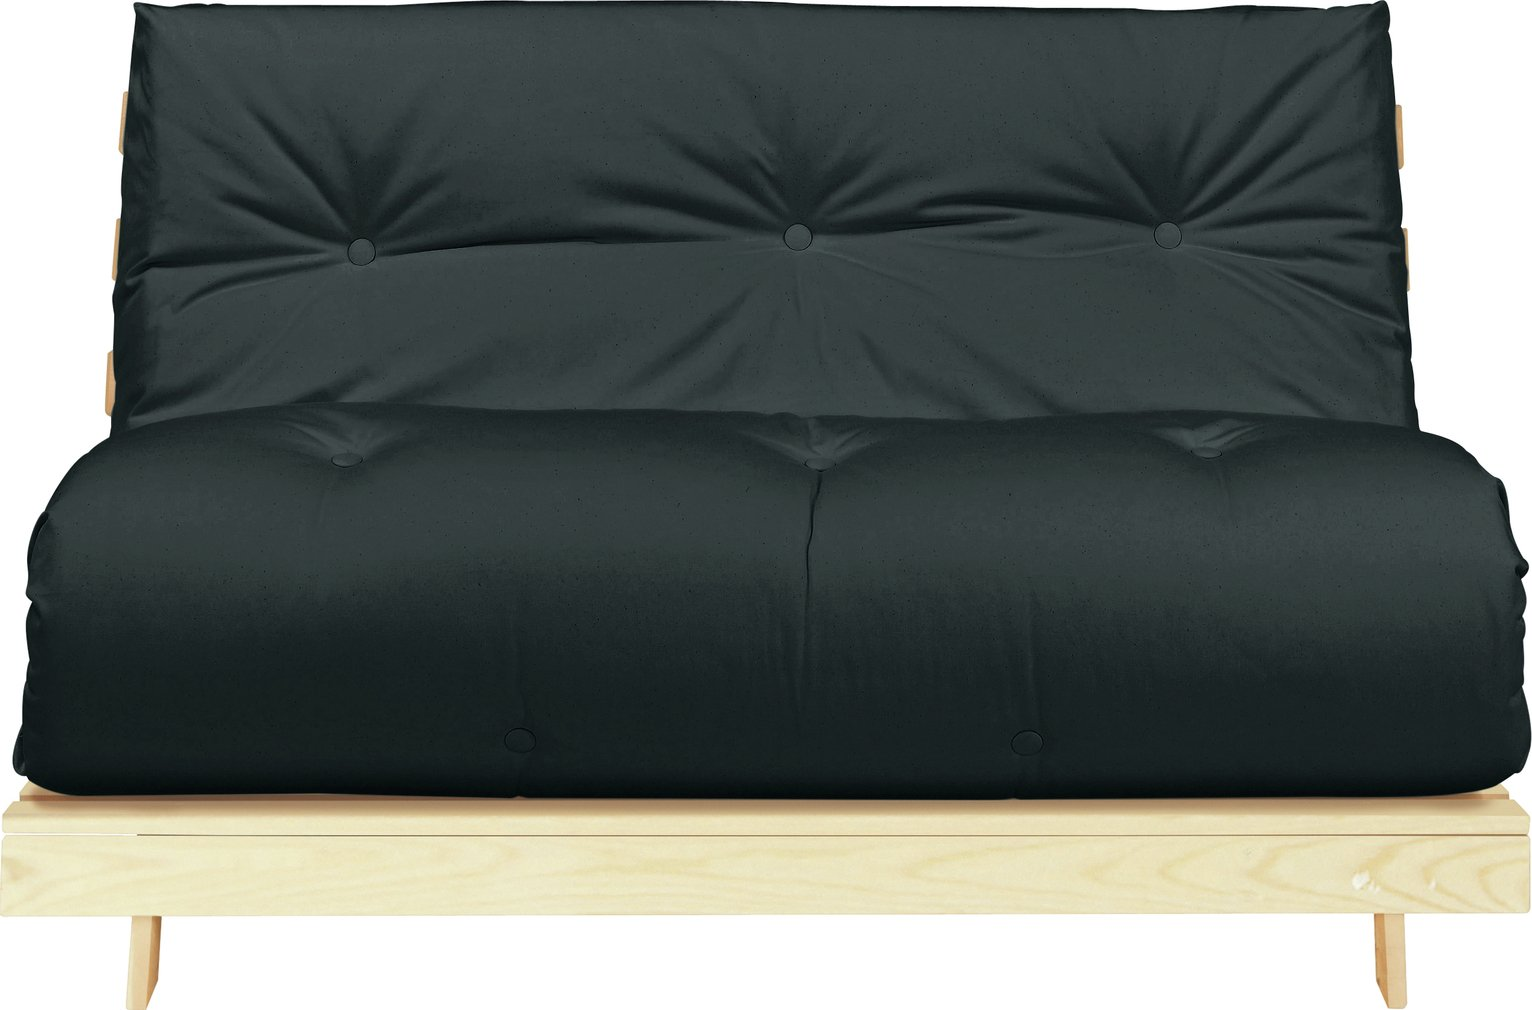 Sofa beds chairbeds and futons Argos